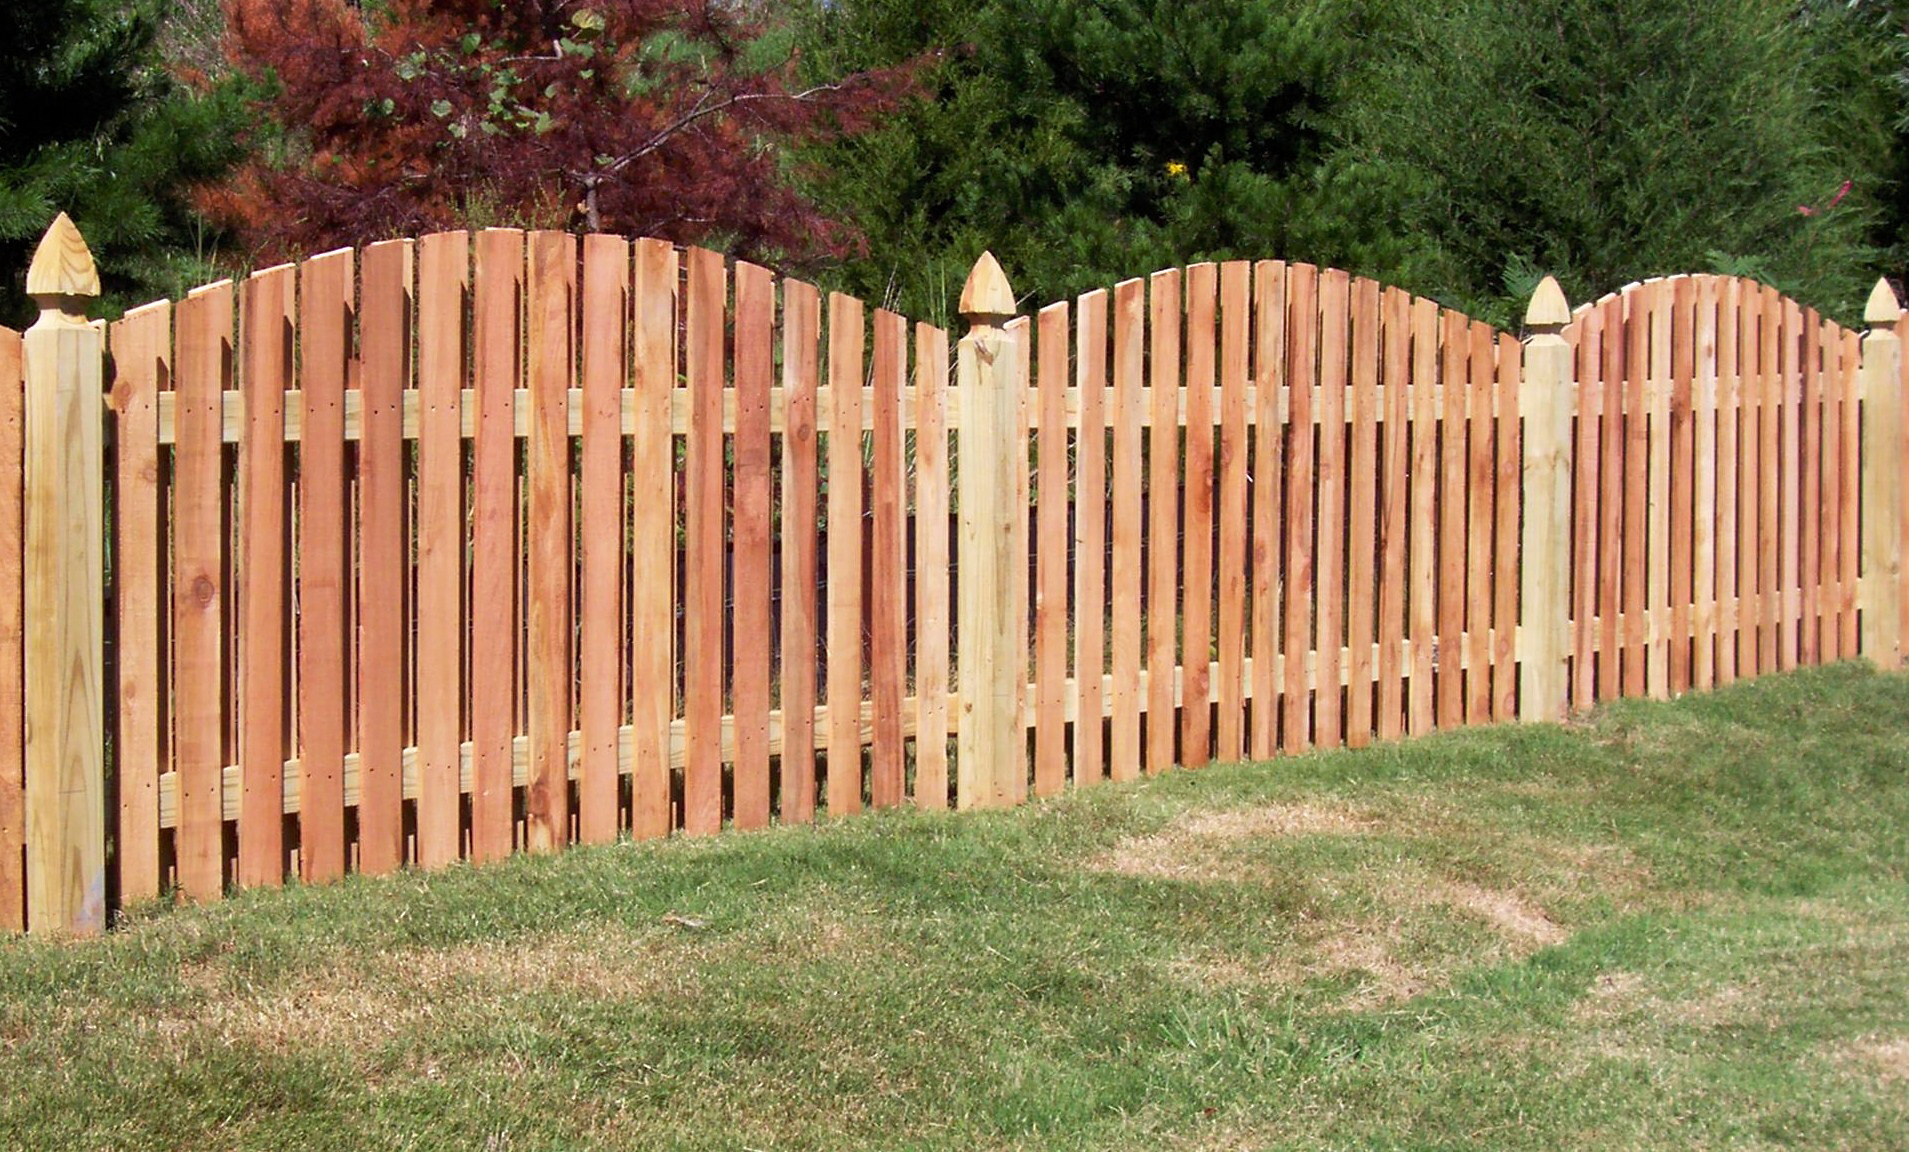 Wood fences jmarvinhandyman Wood garden fence designs